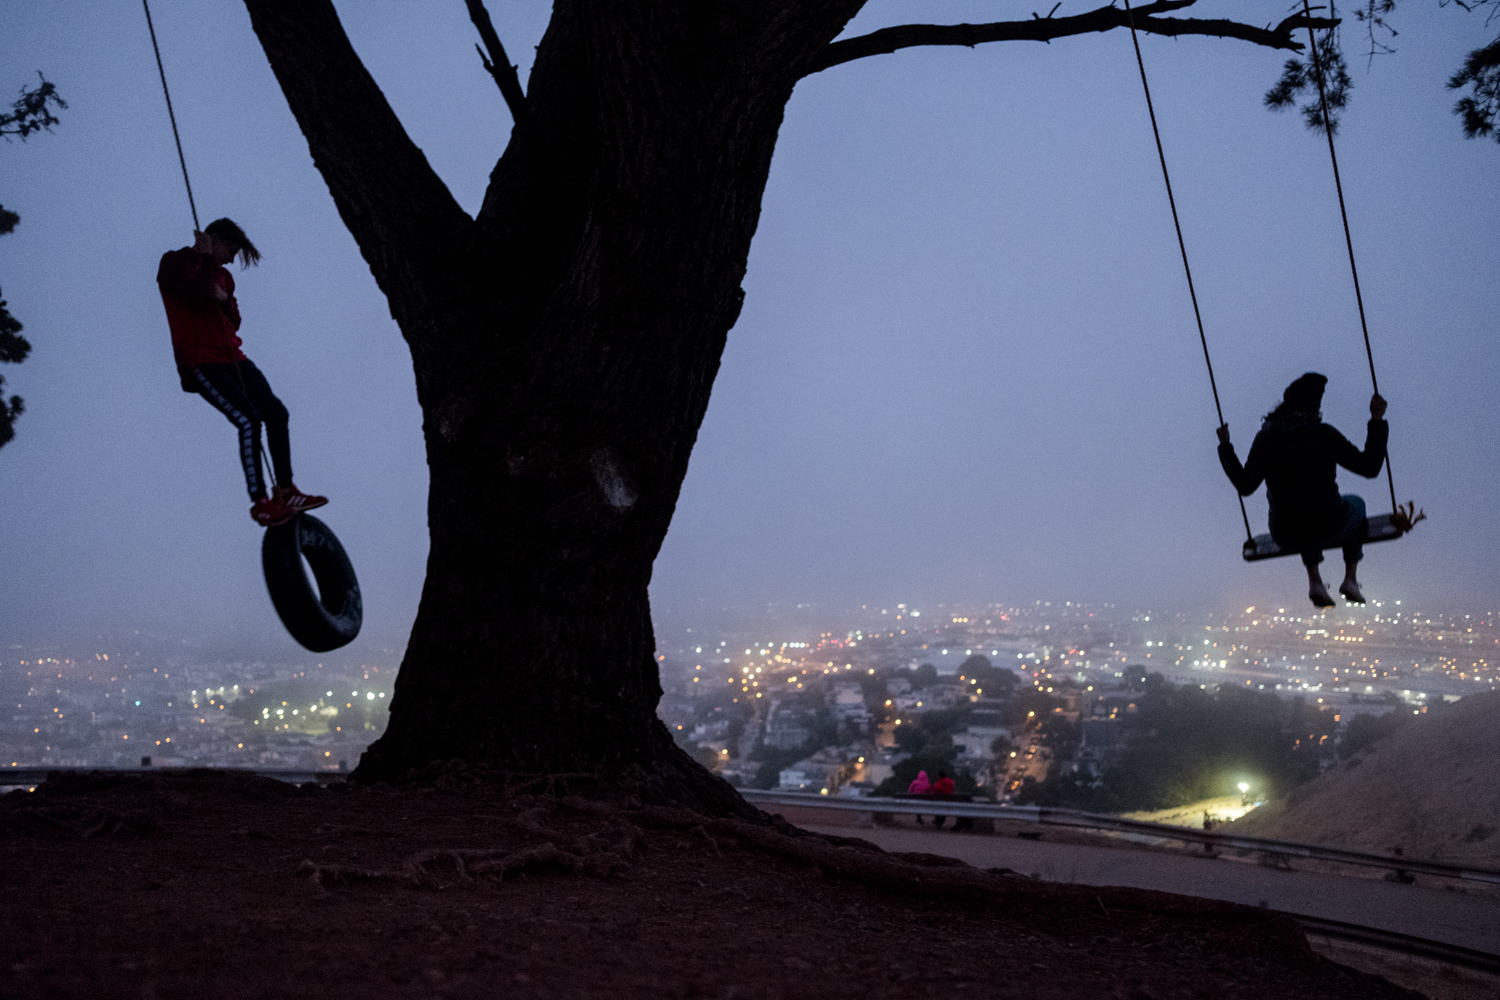 Two people swing under a tree above San Francisco at Bernal Heights.